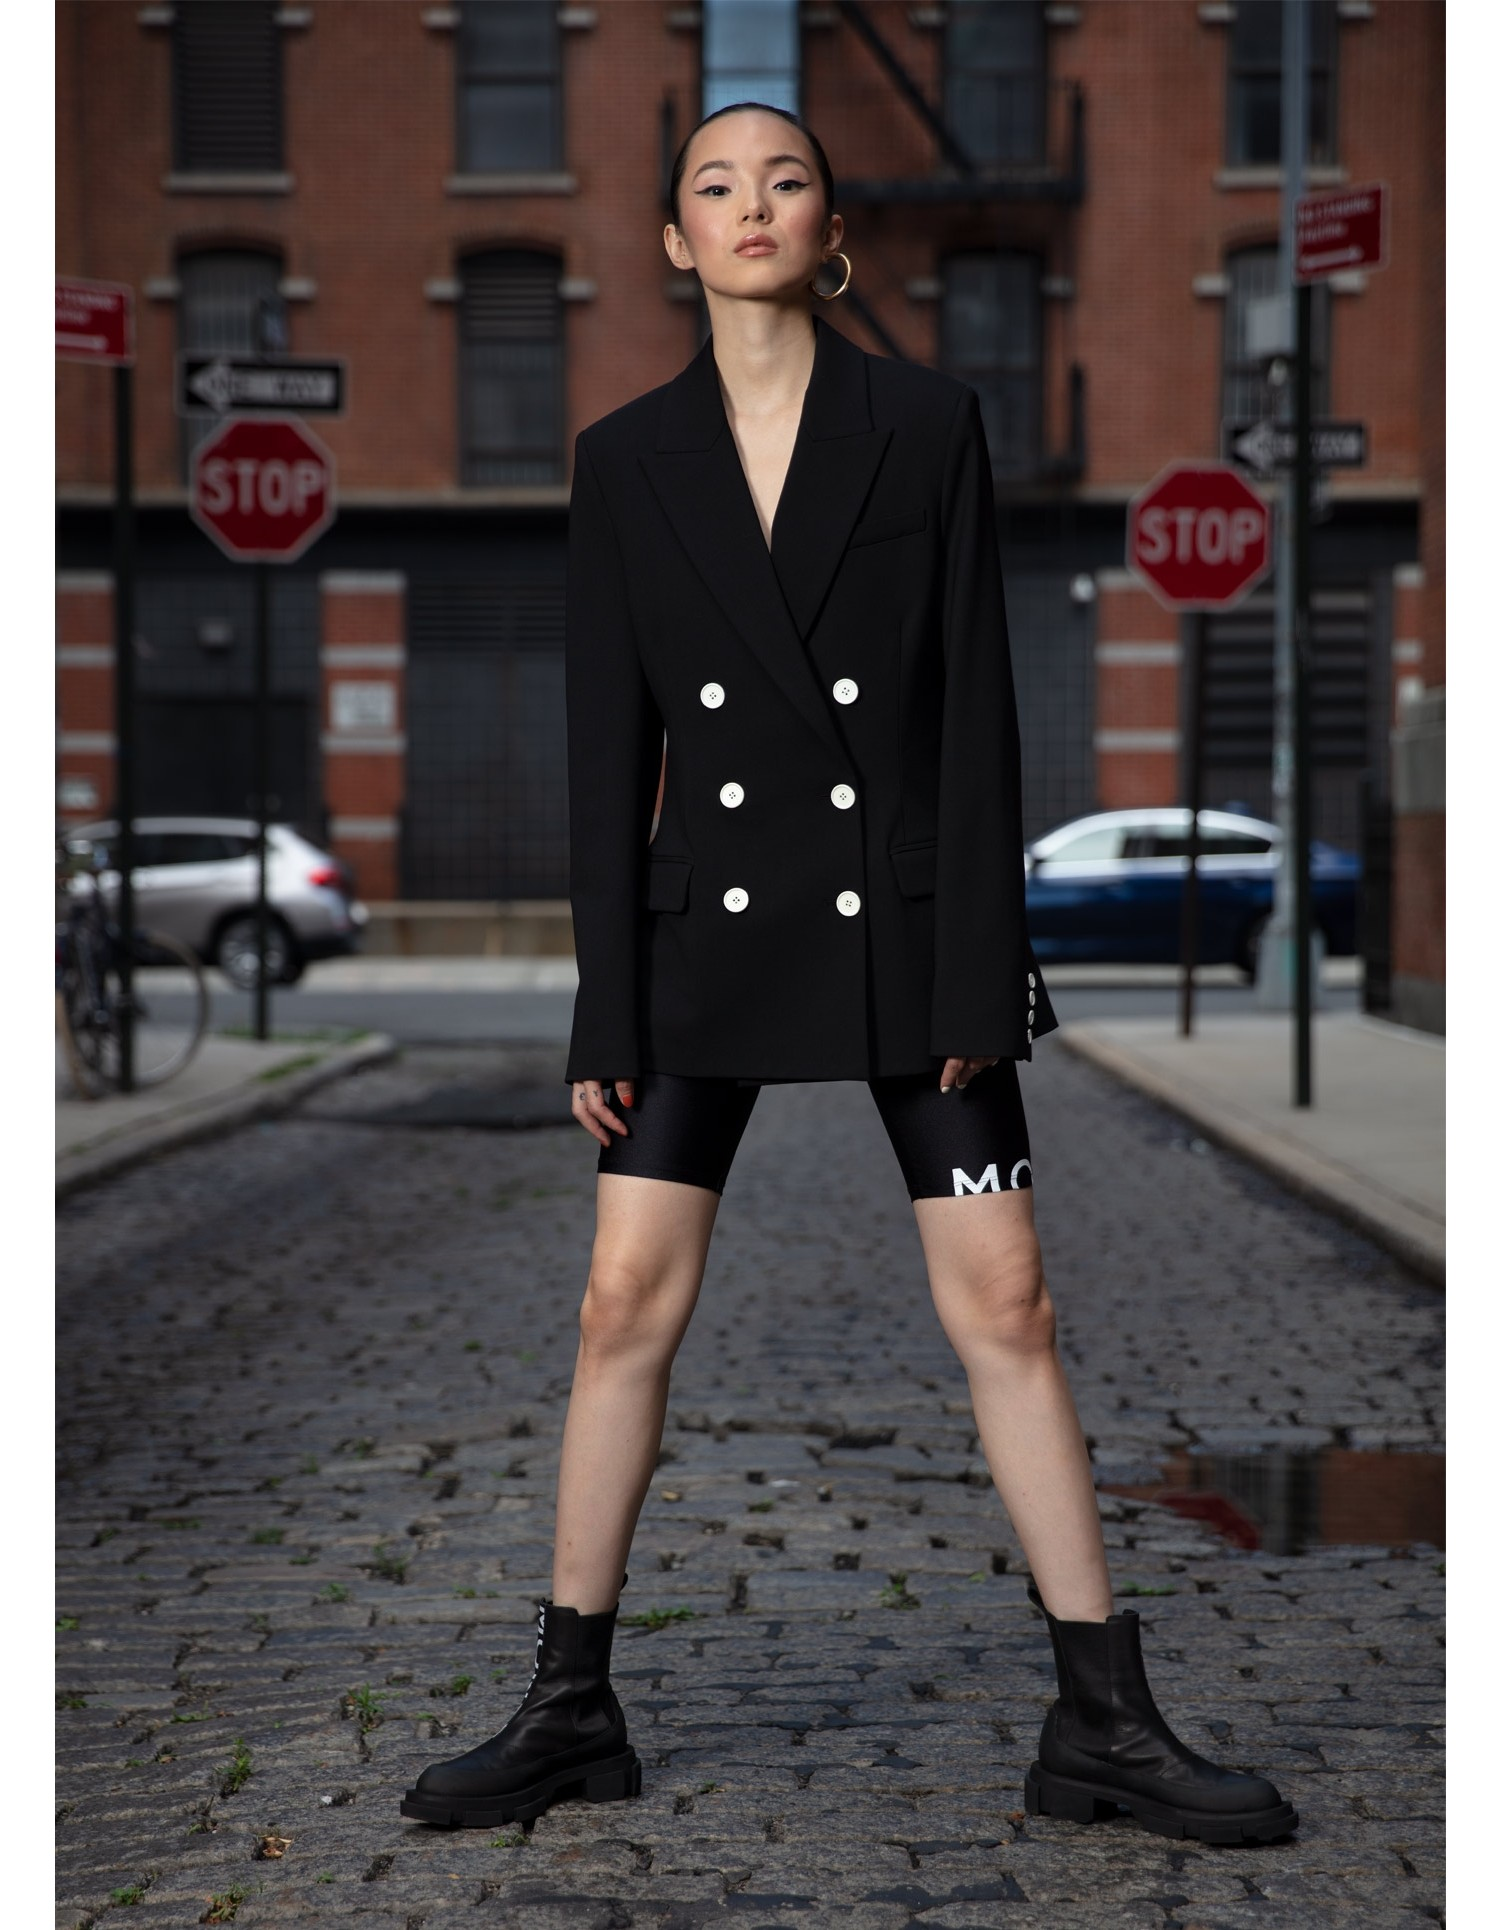 MONSE Cape Blazer in Black on Model Front View